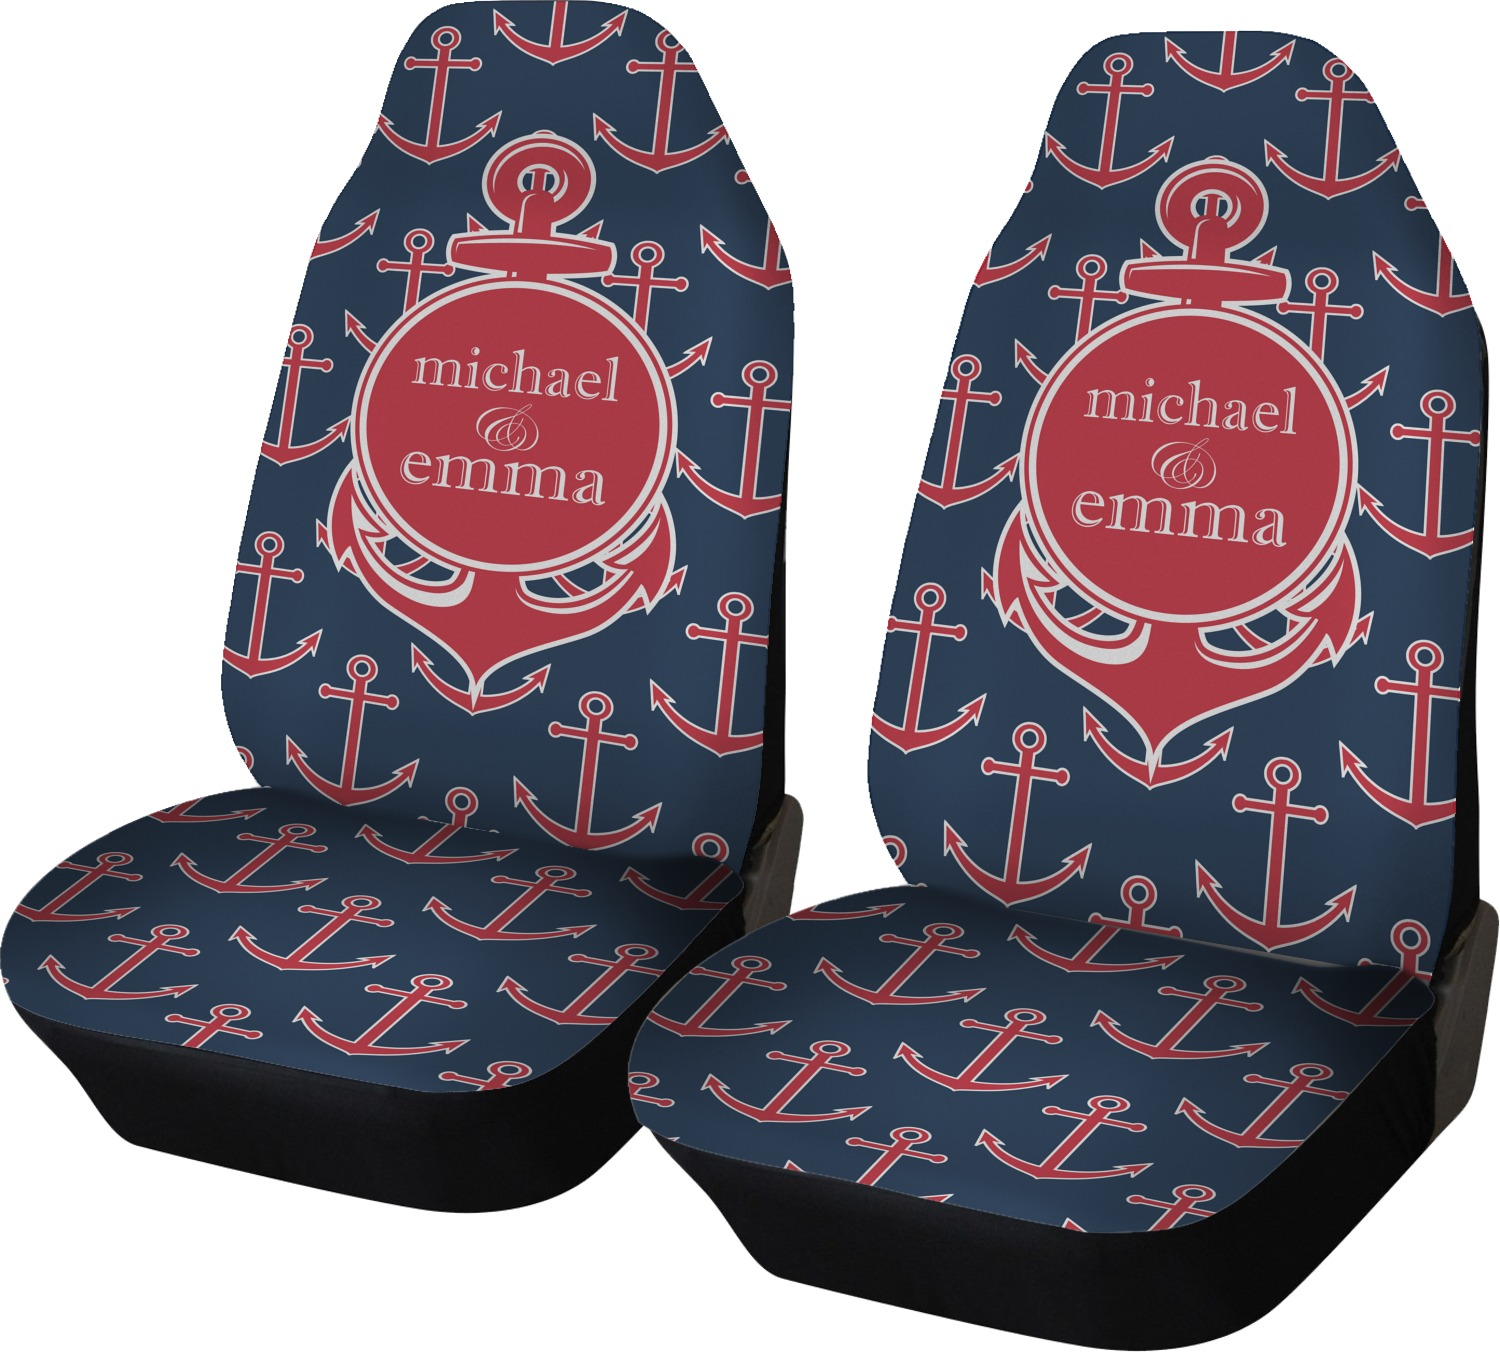 All Anchors Car Seat Covers Set Of Two Personalized